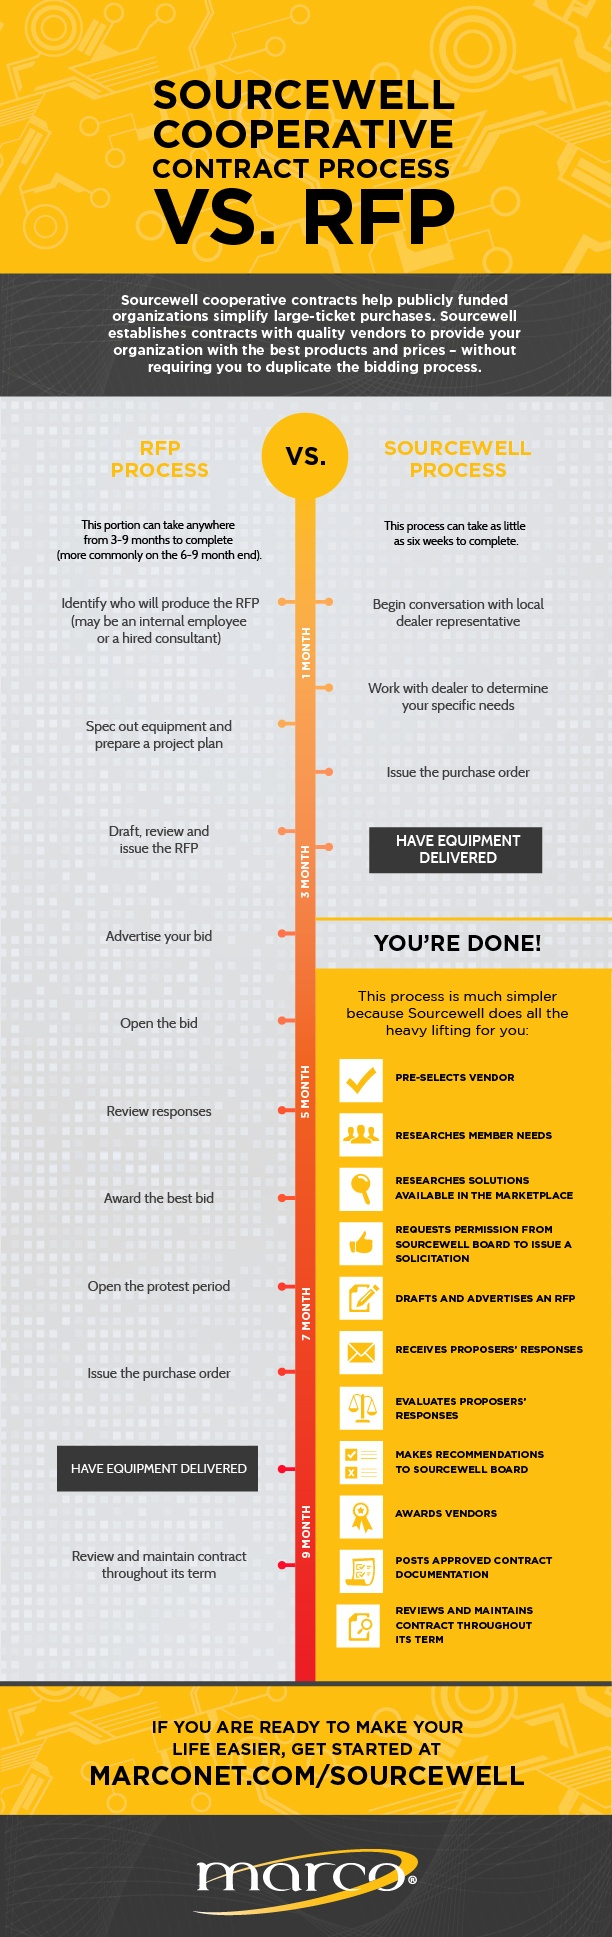 Marco-Sourcewell-Comparison-Infographic-11-01-18